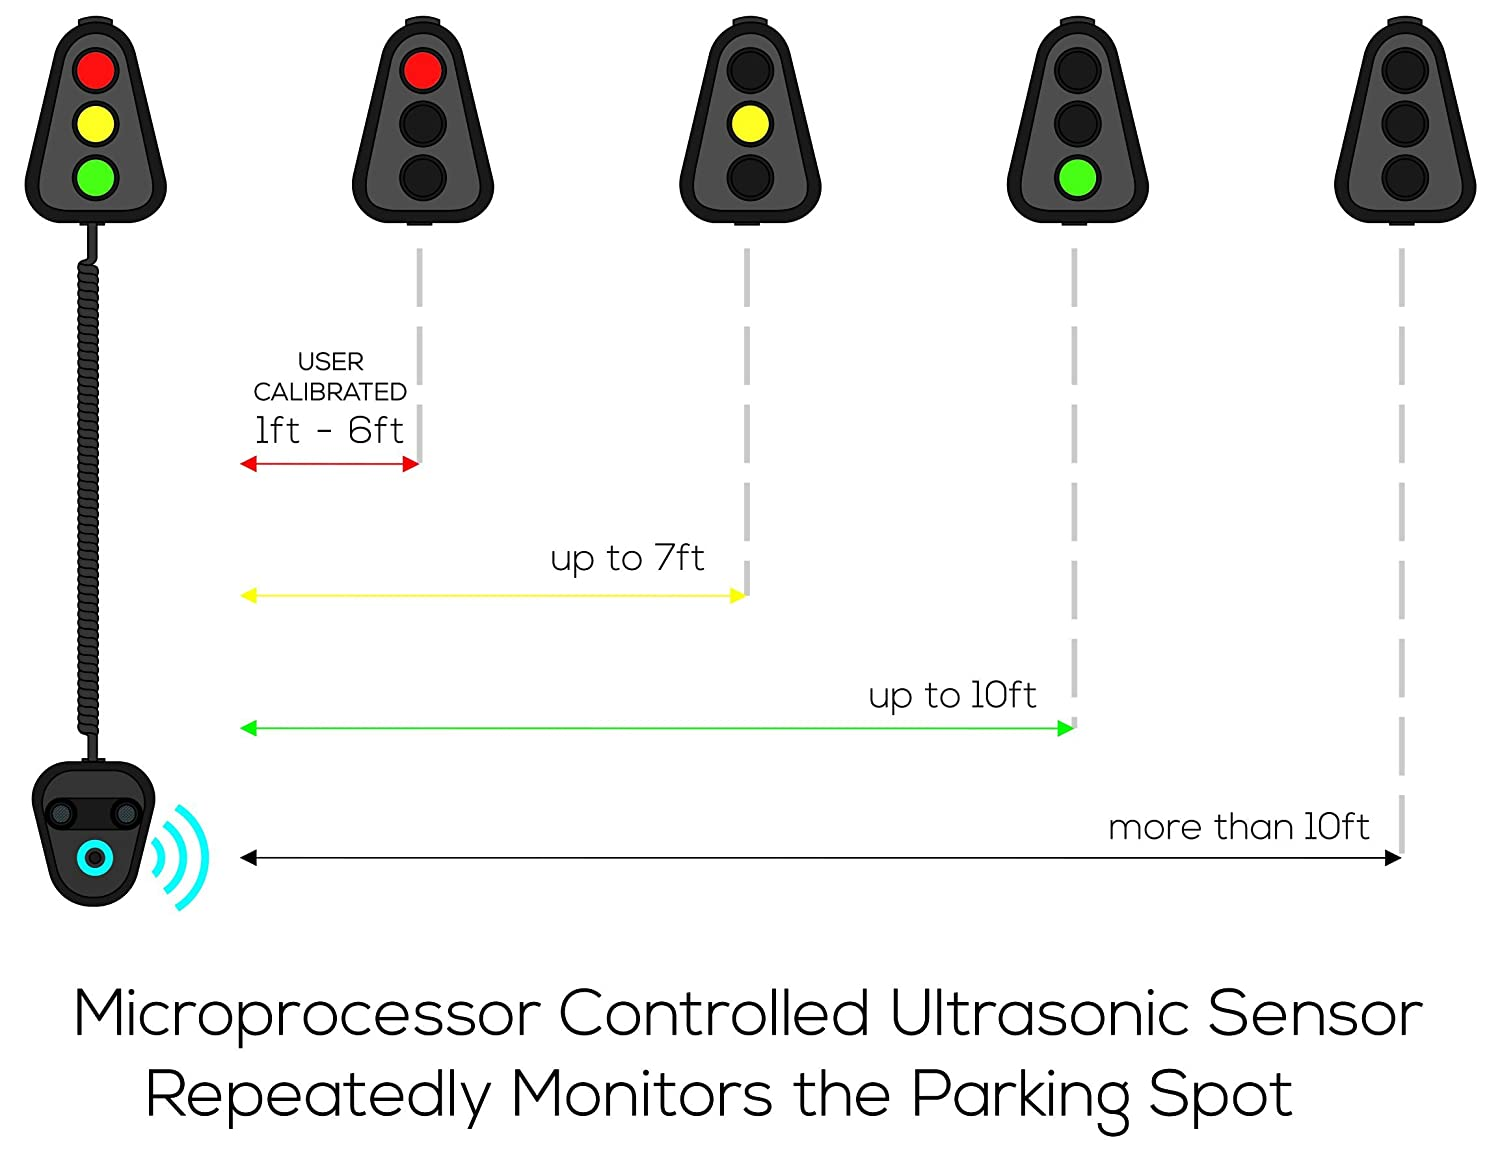 Car Park Assist Sensor System Stop Indicator AC Battery Operated Smart Parking Aid Gadget Stopper Light /& Beep Alerts Nordstrand Parking Assistant Garage